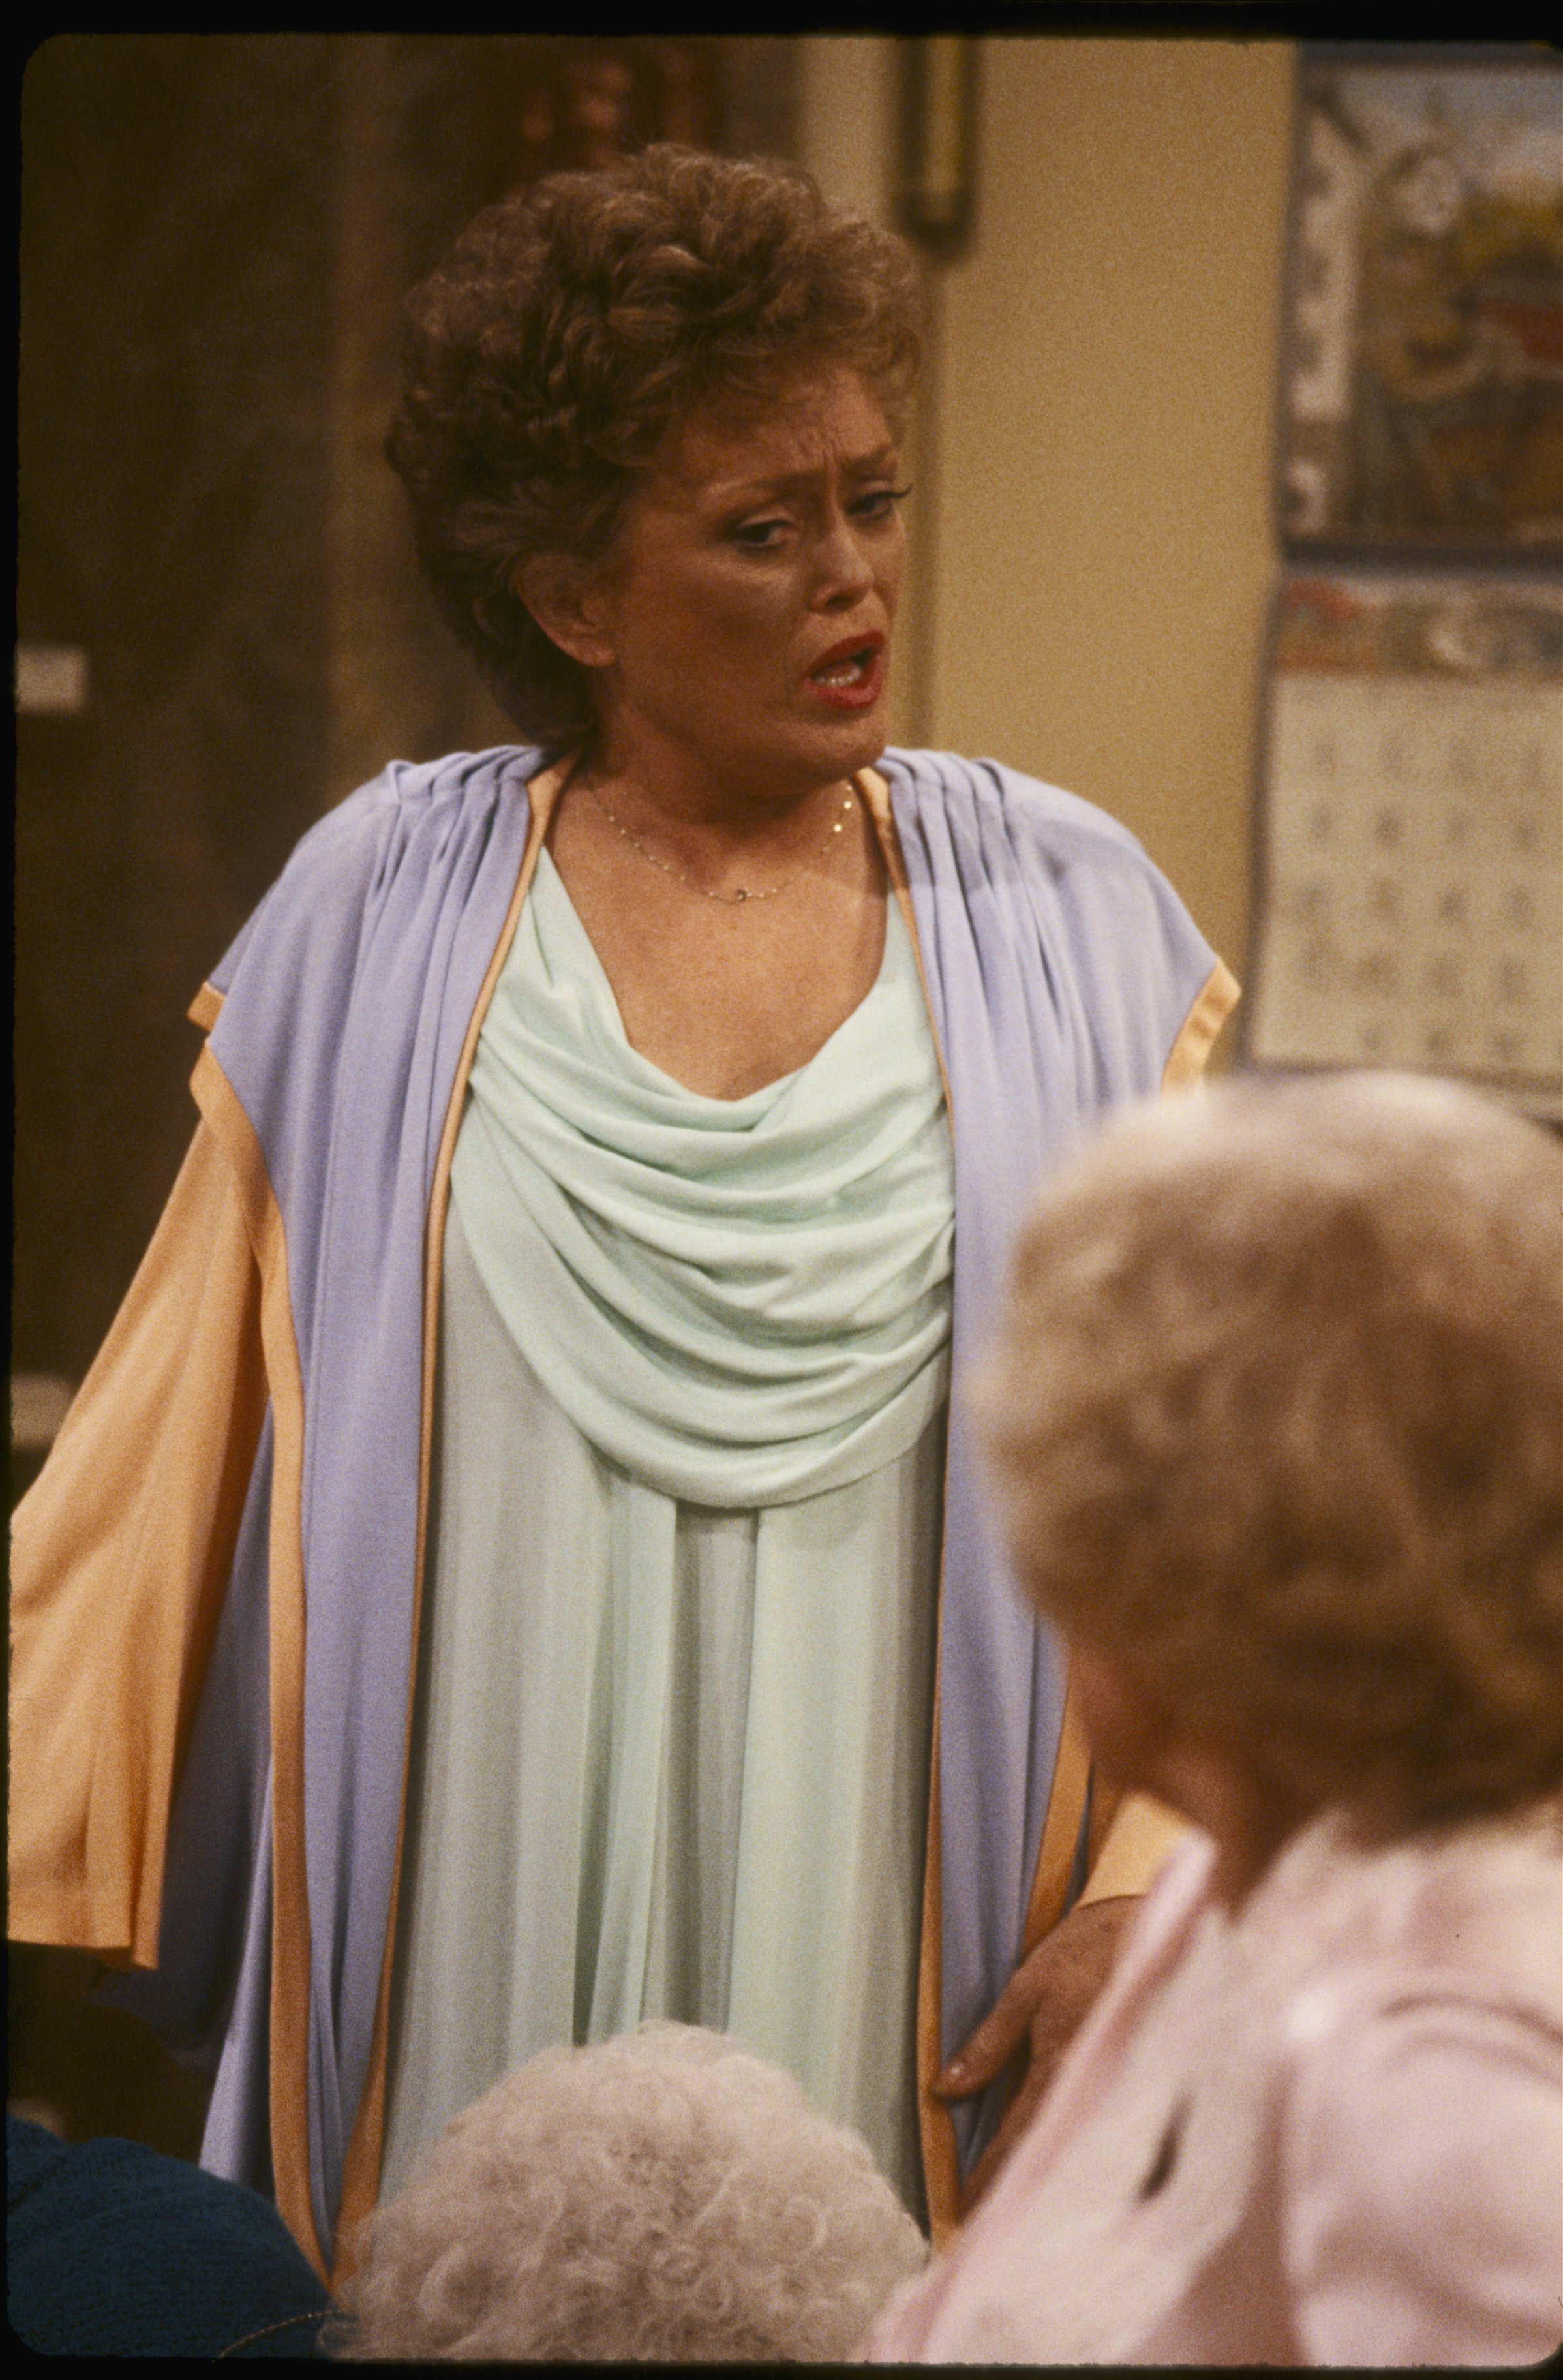 Image credits: Getty Images/The Golden Girls/Walt Disney Television